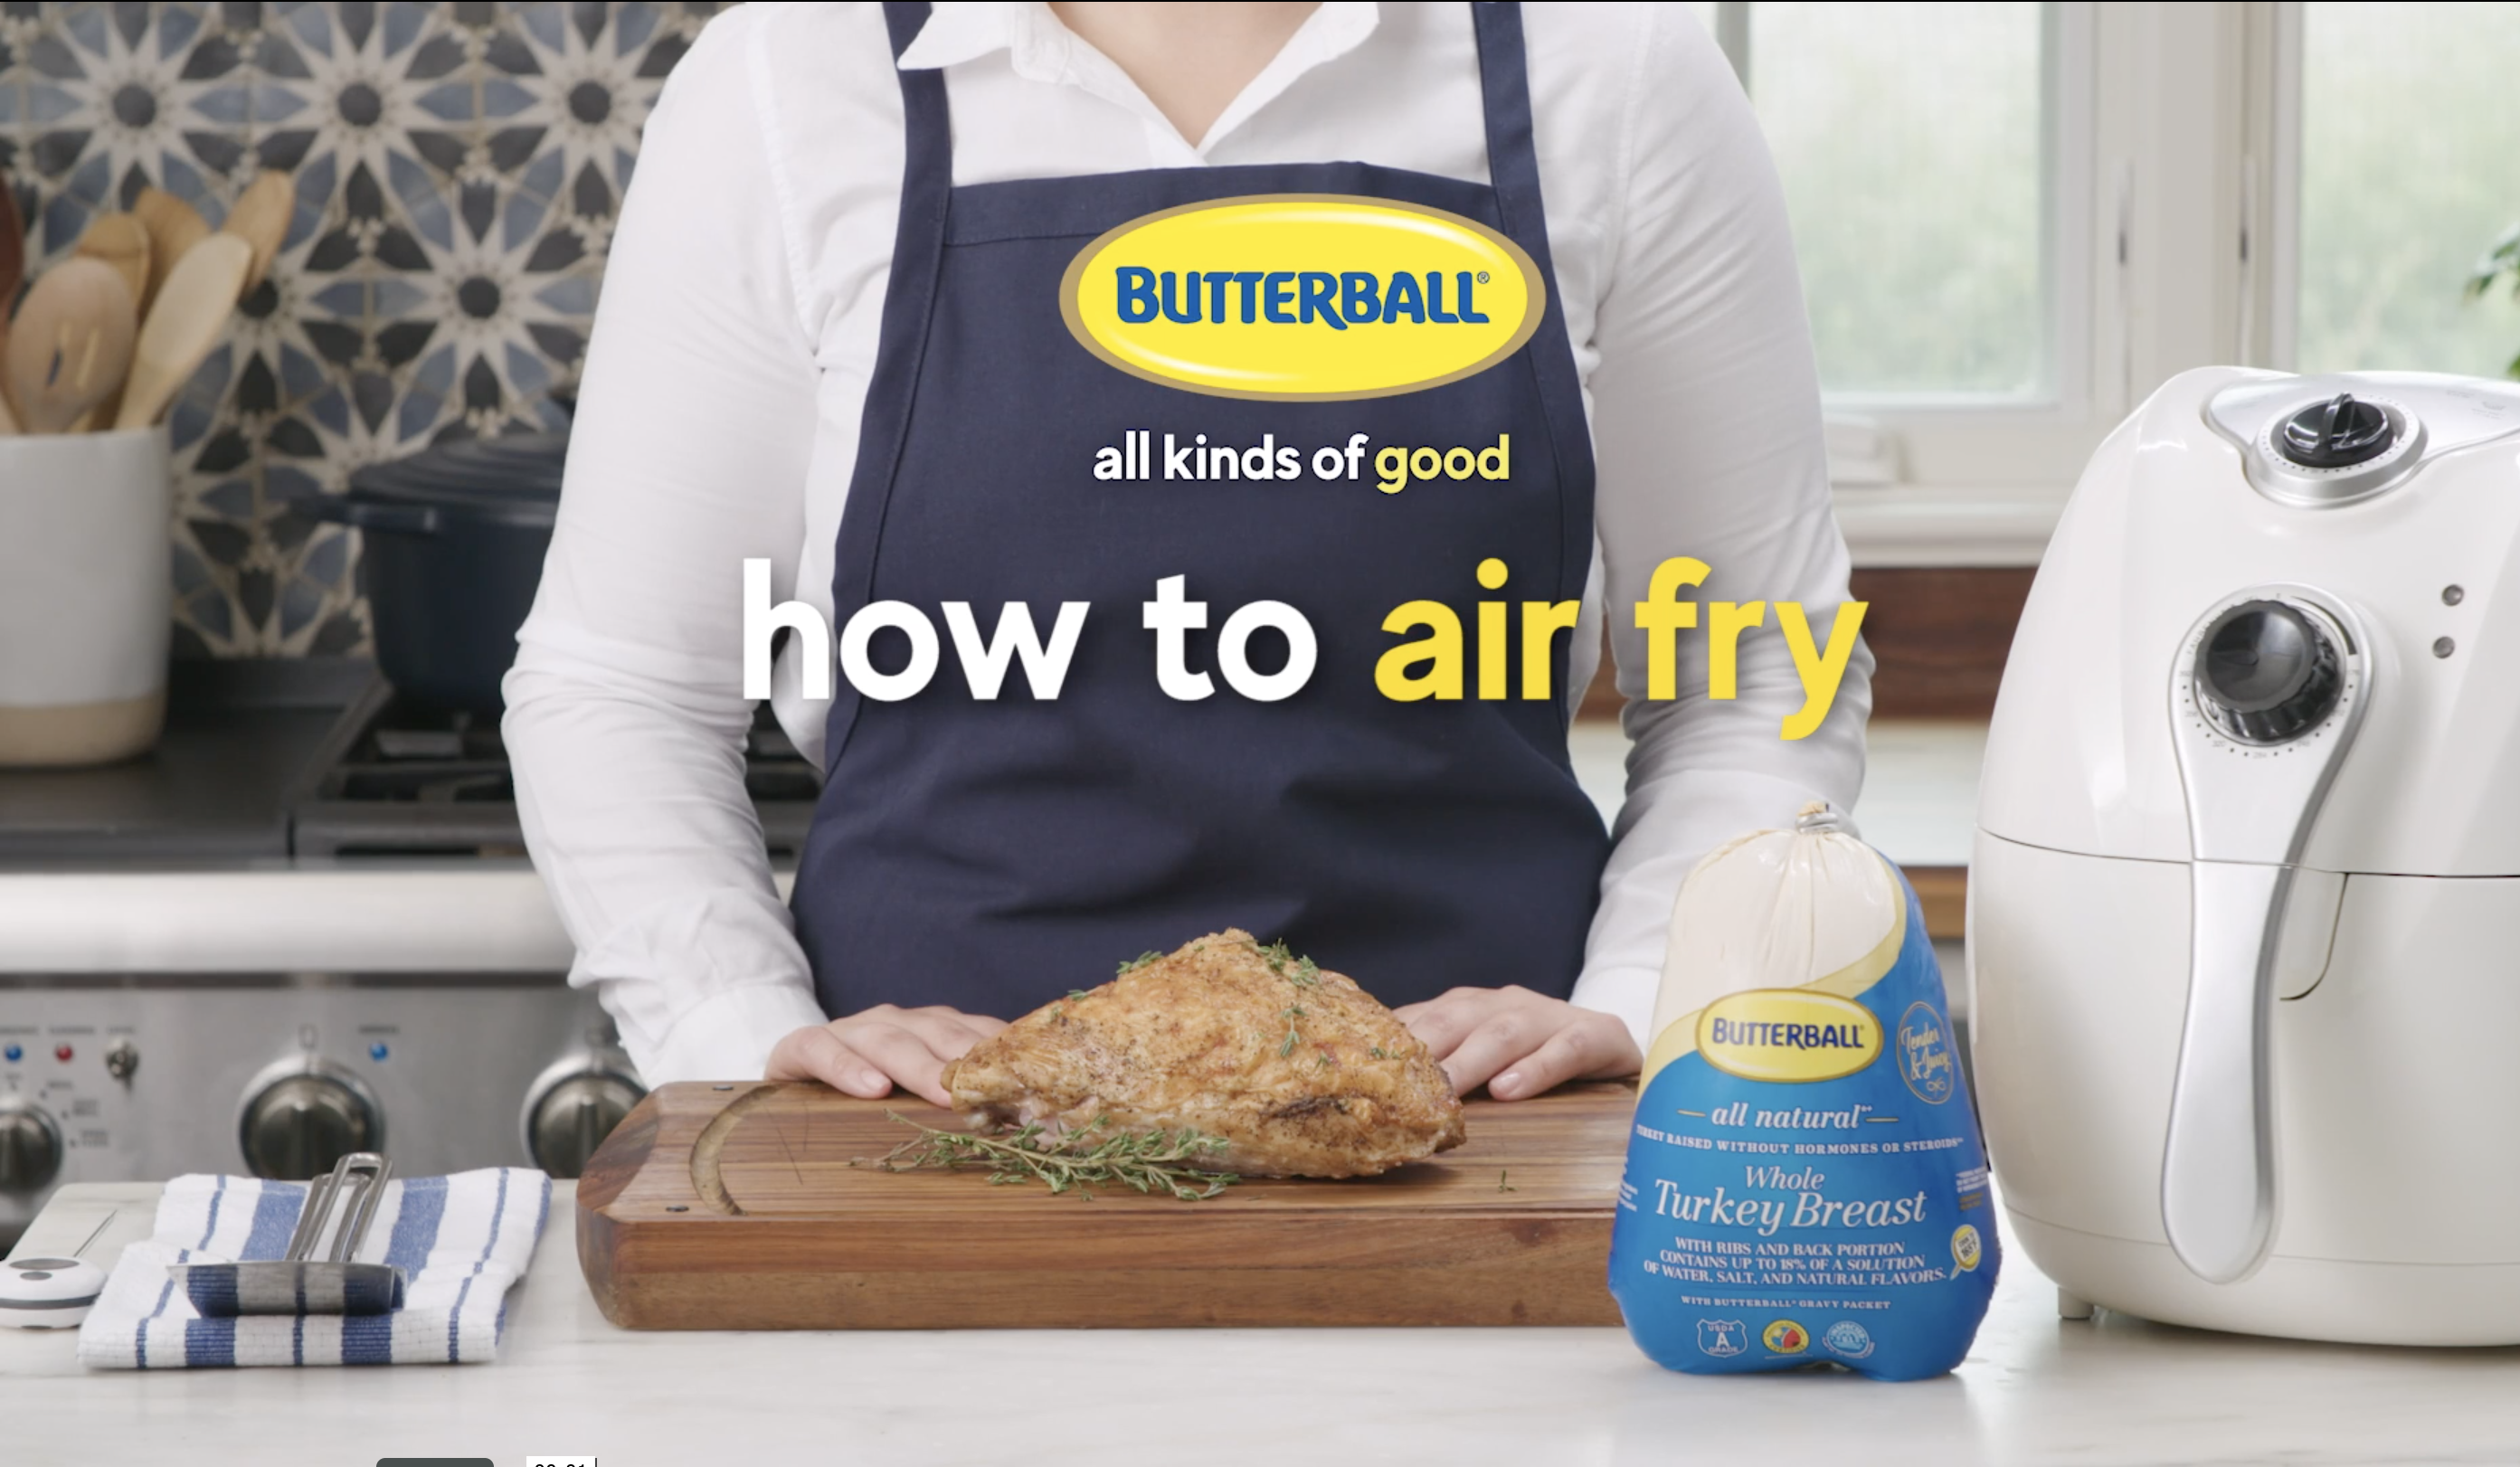 Butterball How to air fry video thumbnail